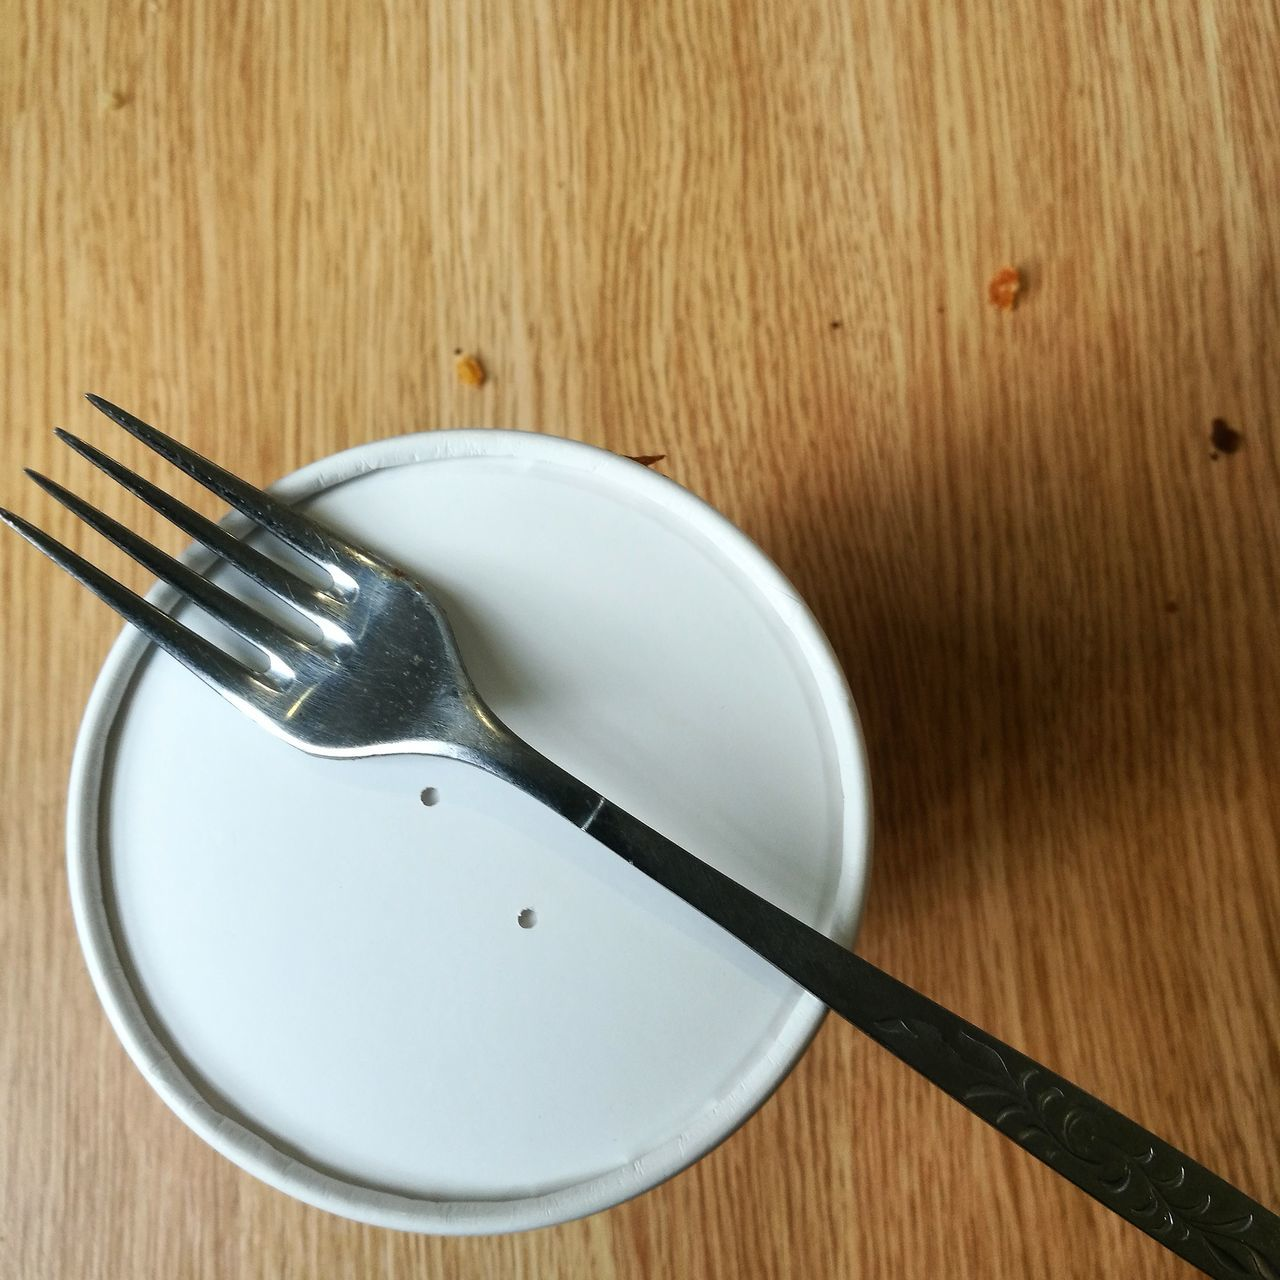 fork, wood - material, table, plate, directly above, high angle view, food and drink, no people, cutlery, indoors, food, close-up, leftovers, freshness, day